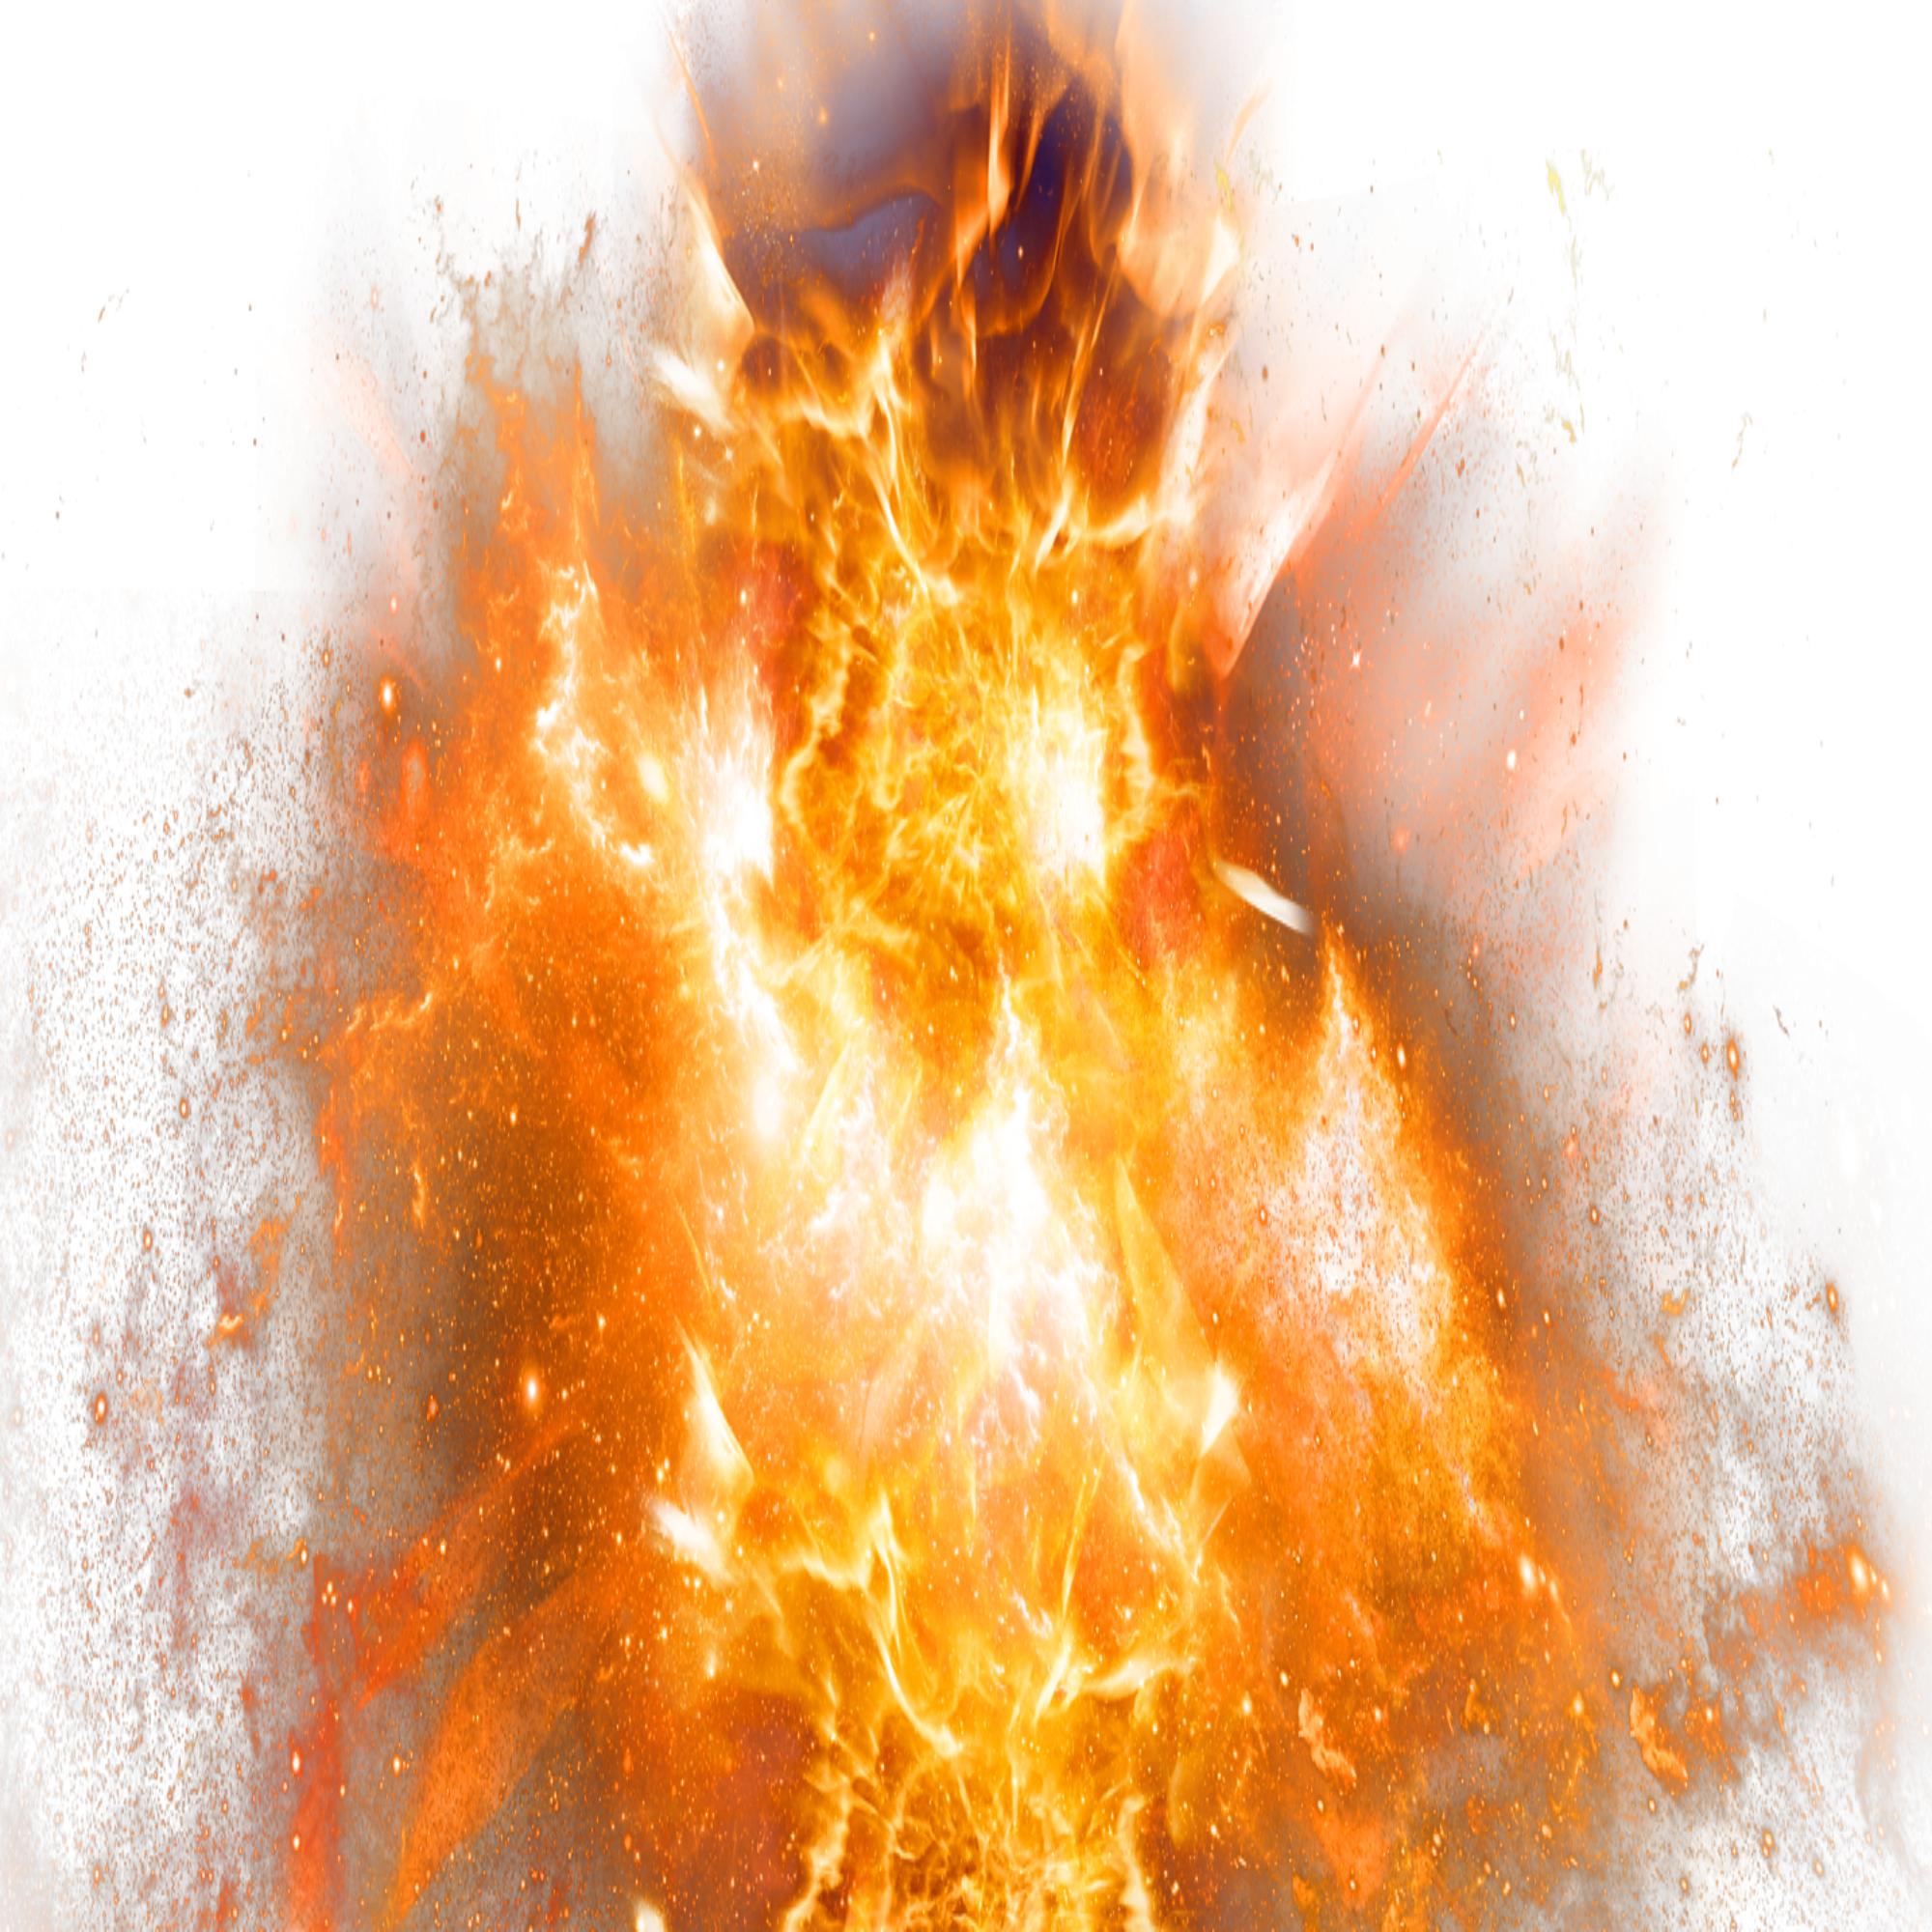 Fire clipart explosion. With png image purepng